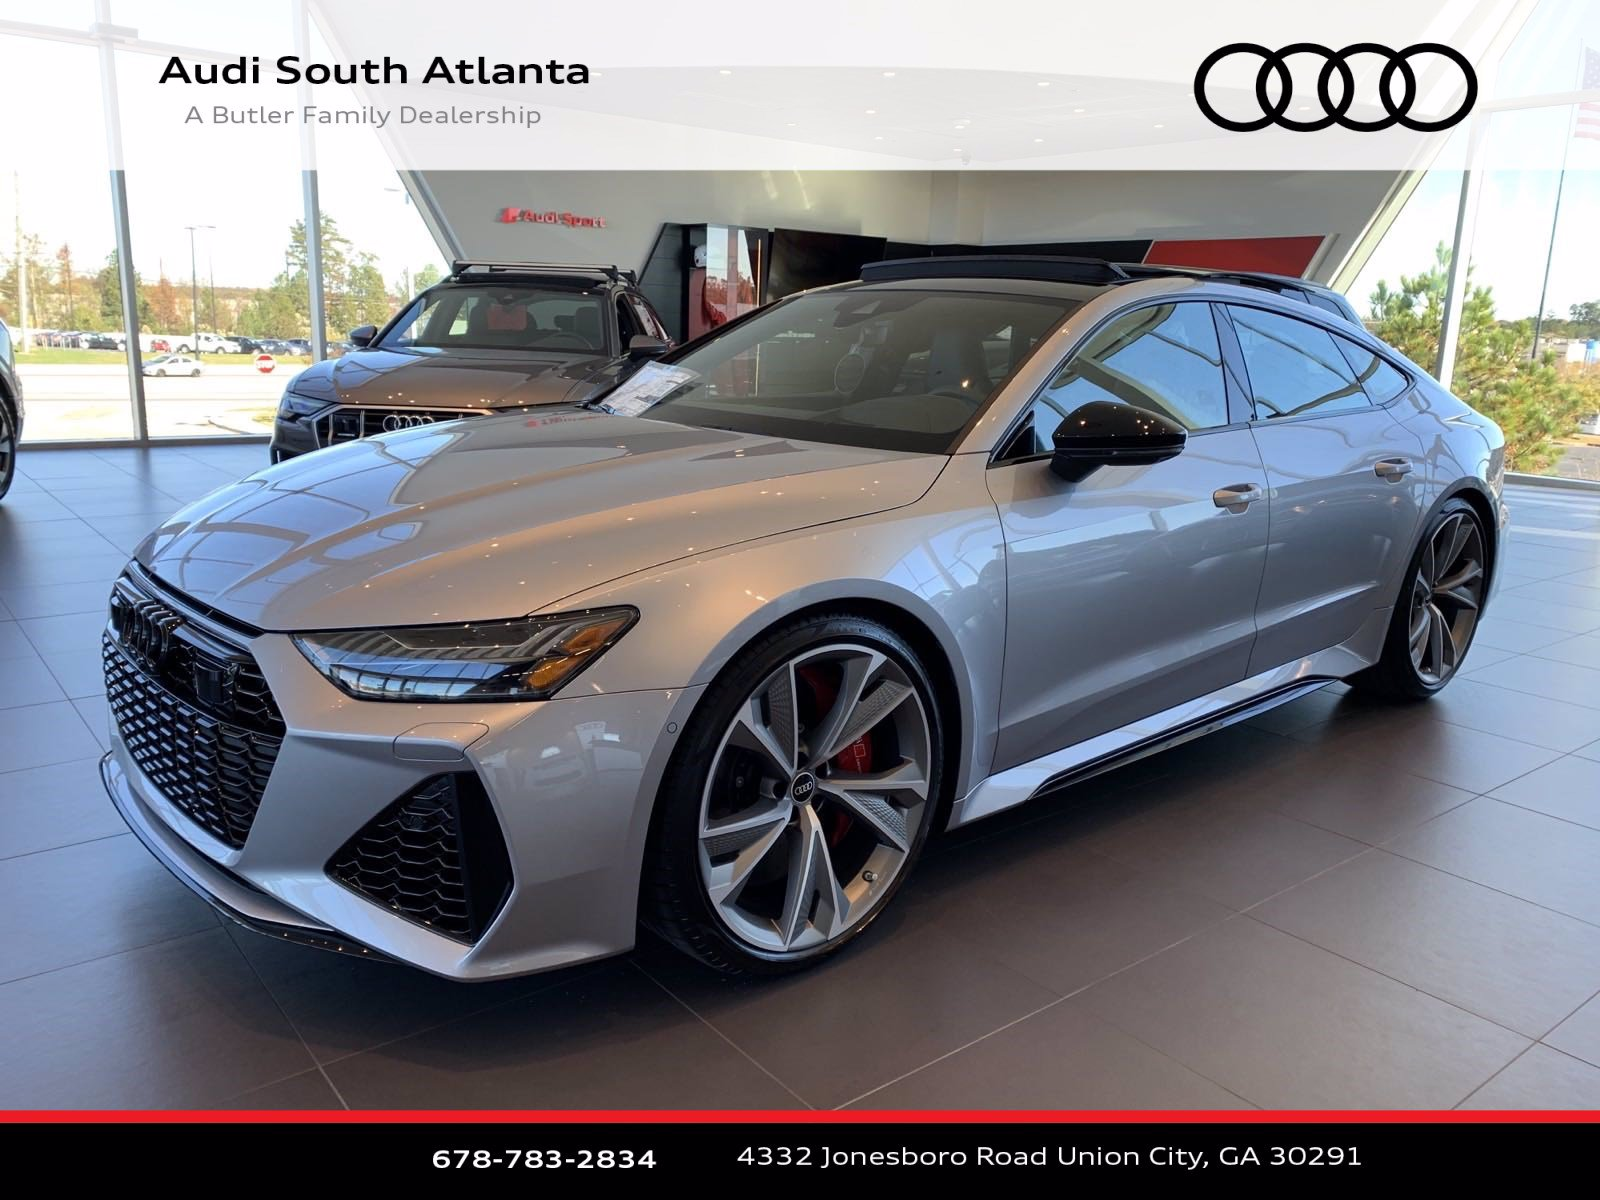 2021 Audi Rs 7 For Sale In Union City Ga Audi South Atlanta